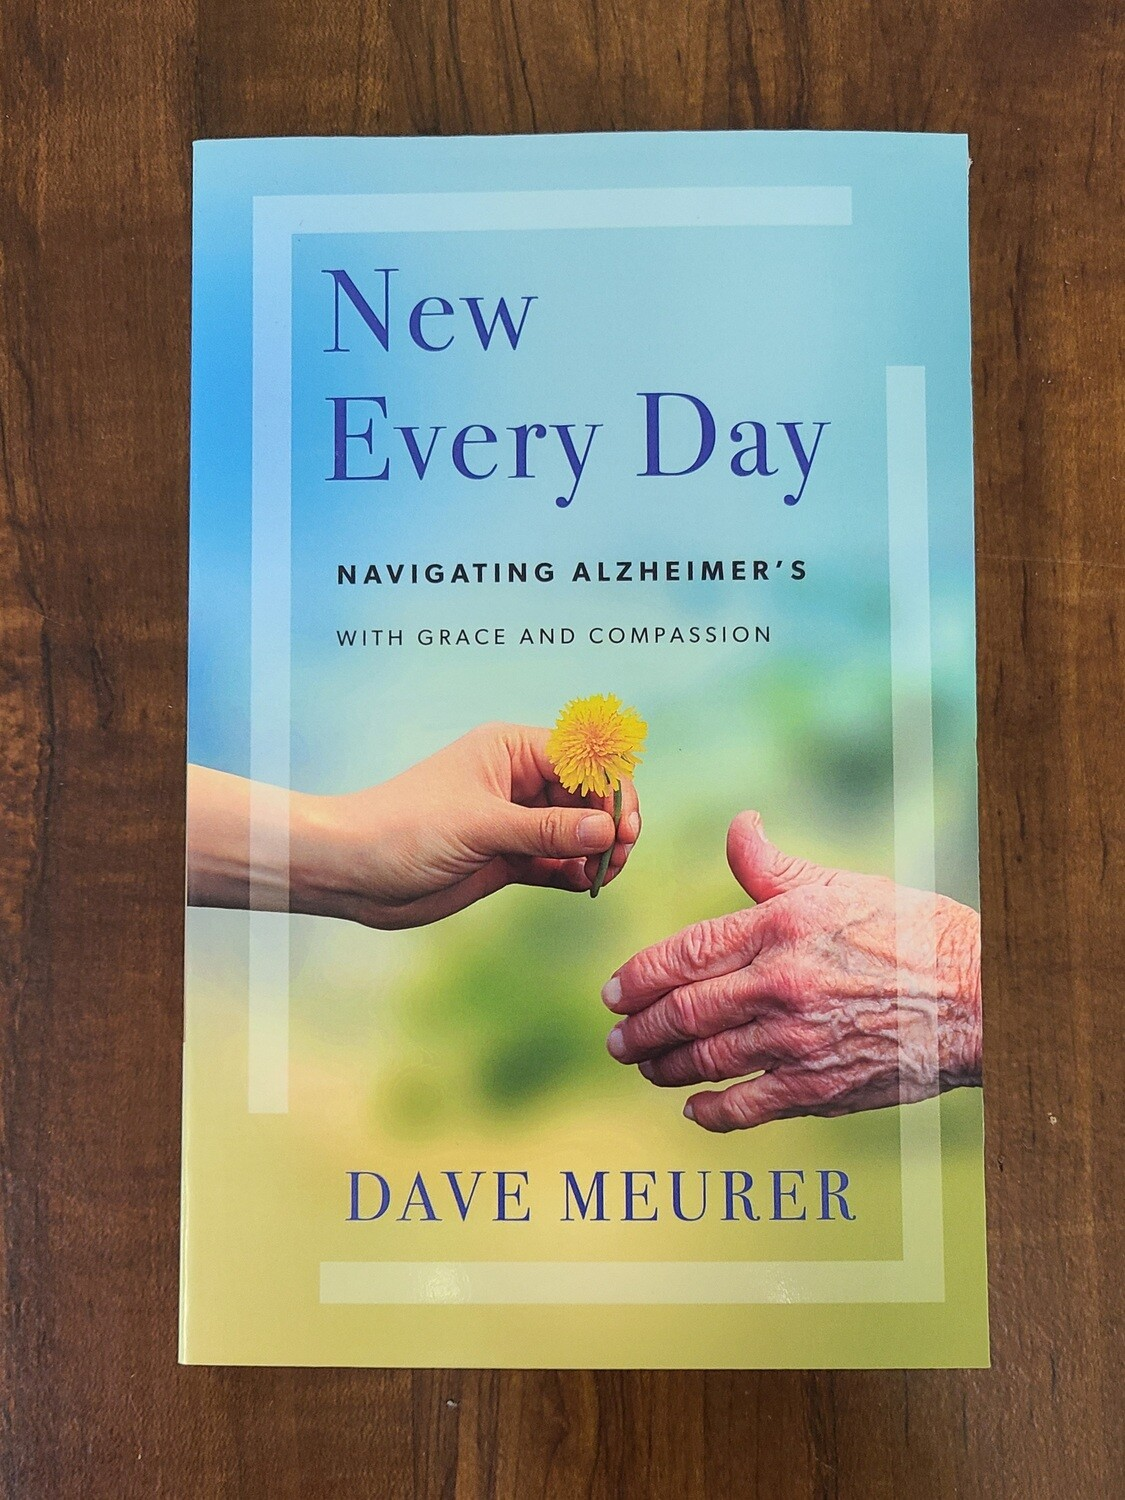 New Every Day: Navigating Alzheimer's with Grace and Compassion by Dave Meurer